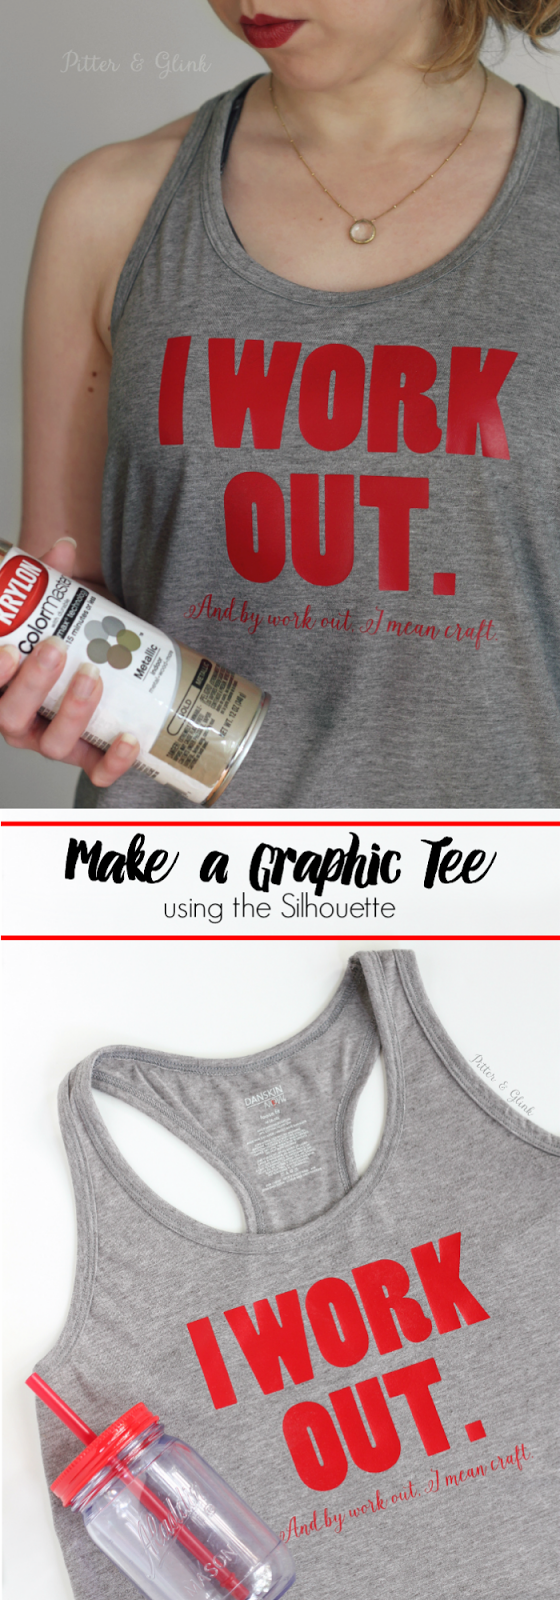 Make a graphic tee using the Silhouette and heat transfer vinyl. www.pitterandglink.com